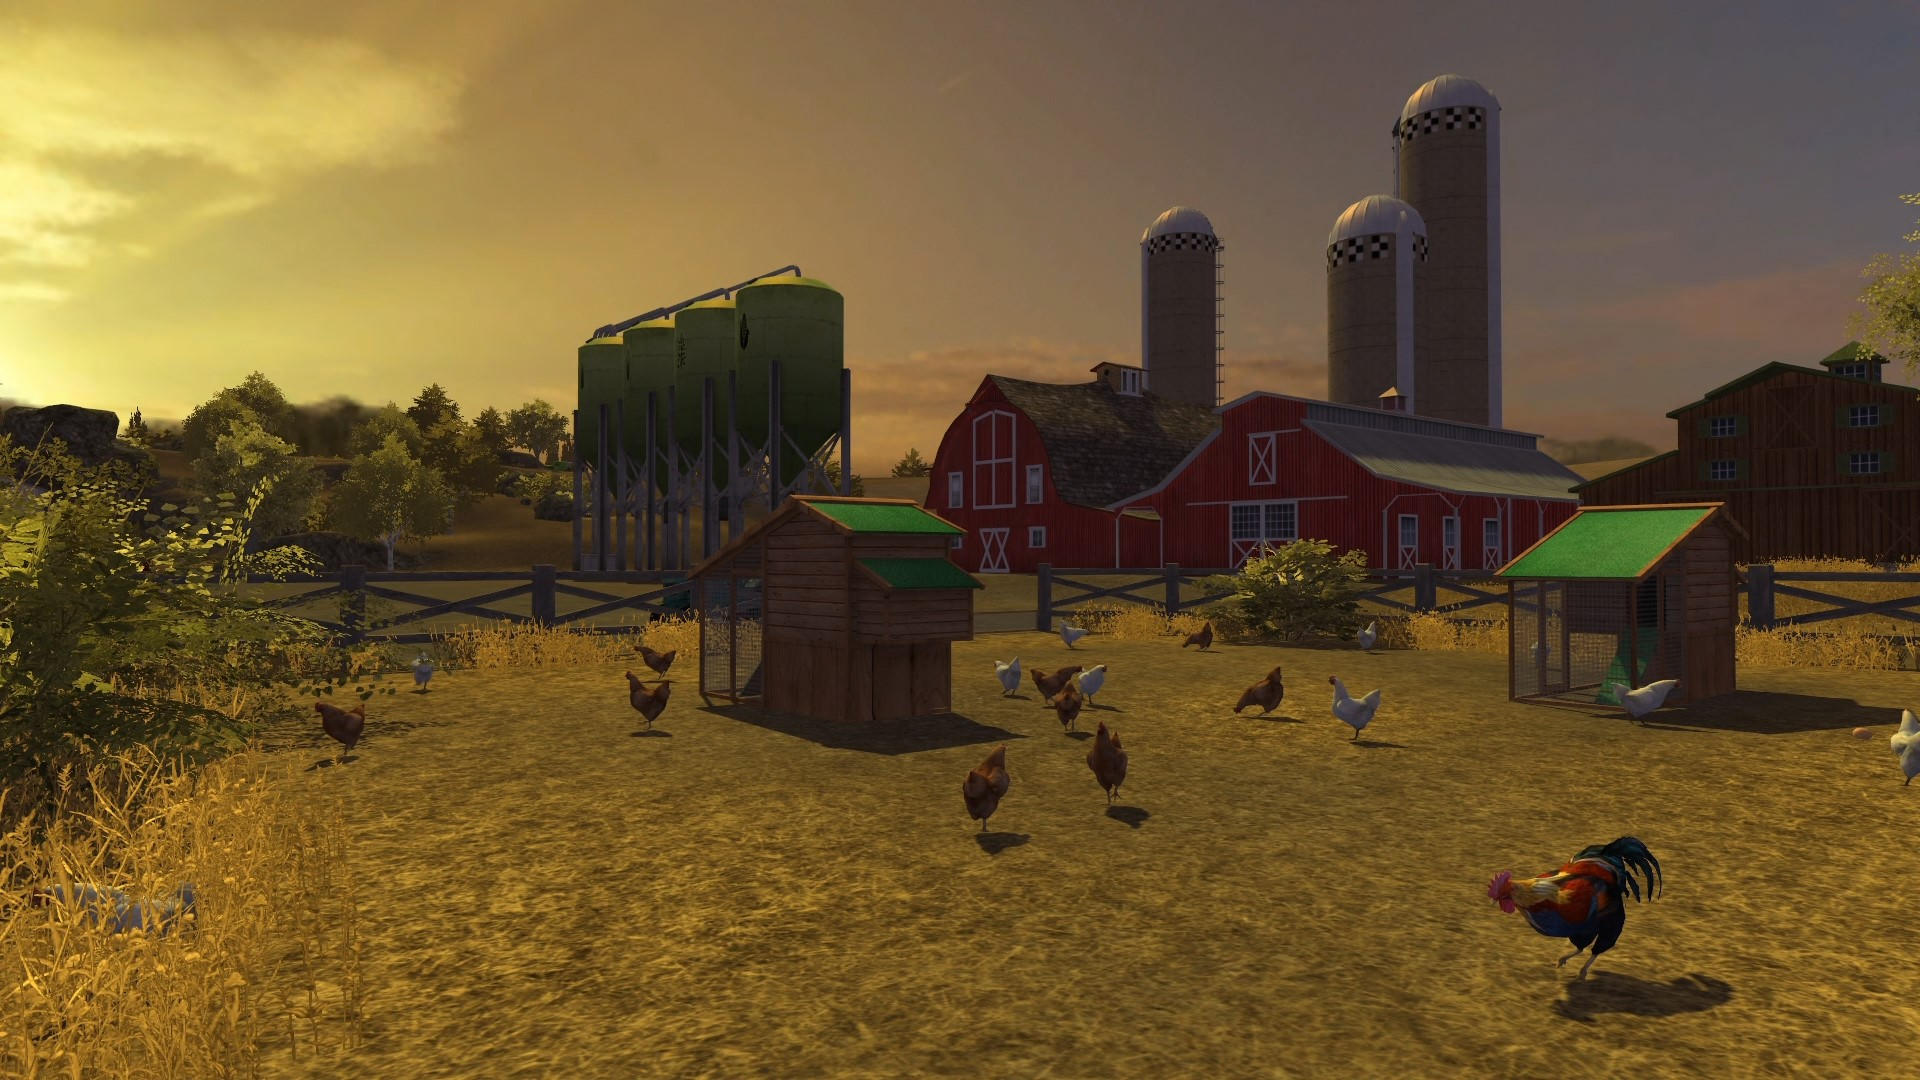 Farming Simulator 2013: TITANIUM + Modding Tutorials